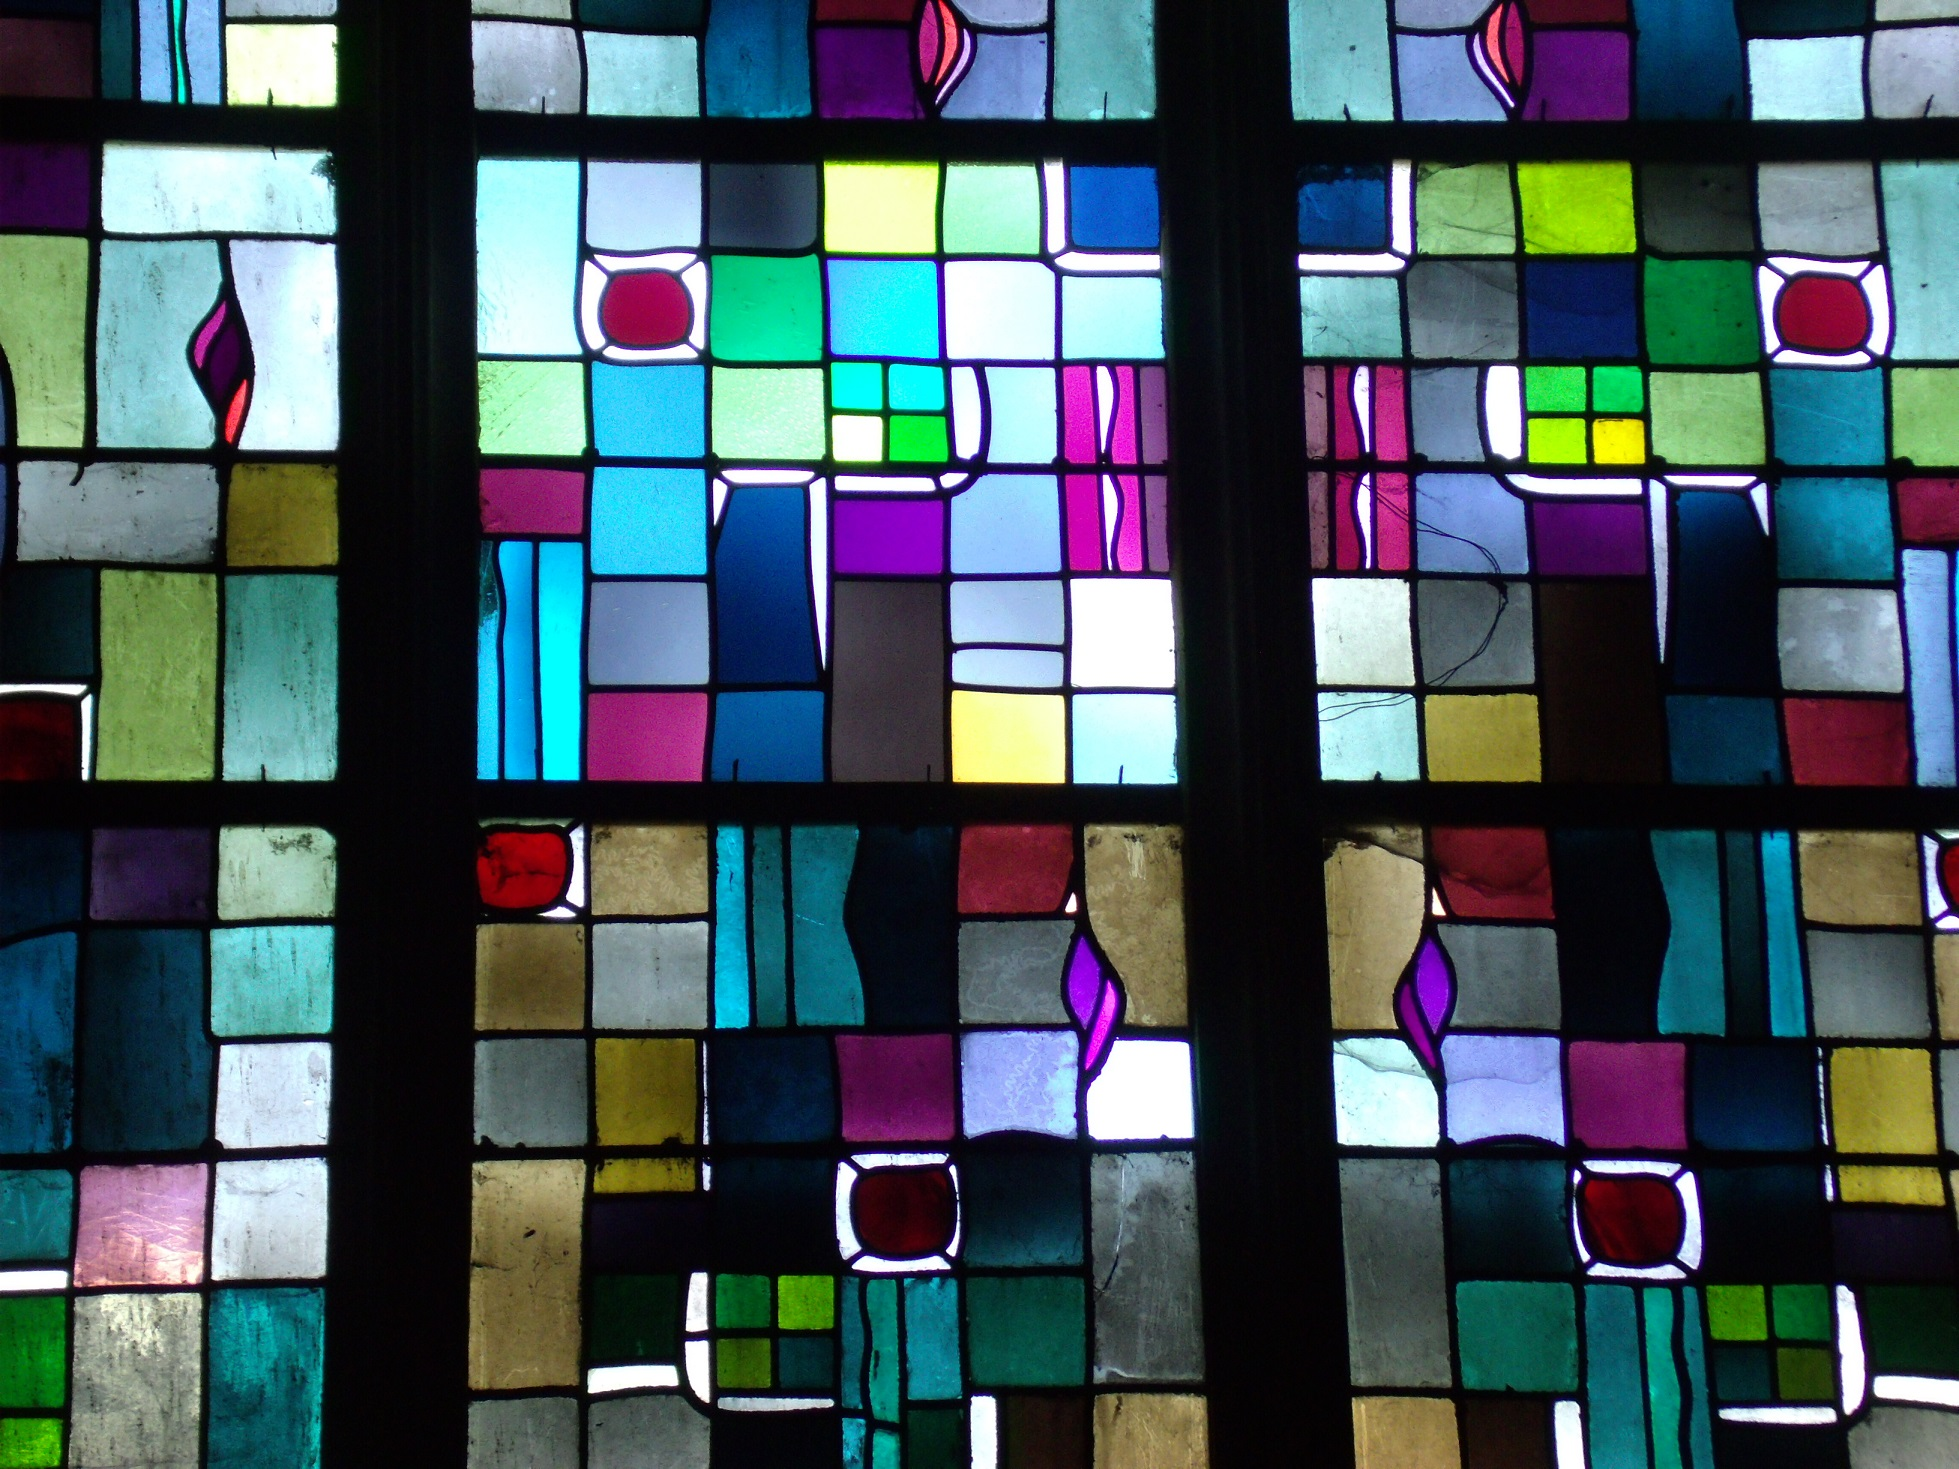 Some of the windows at Église Saint Jean, Caen are by Max Ingrand, recognisable by the soft abstract style.